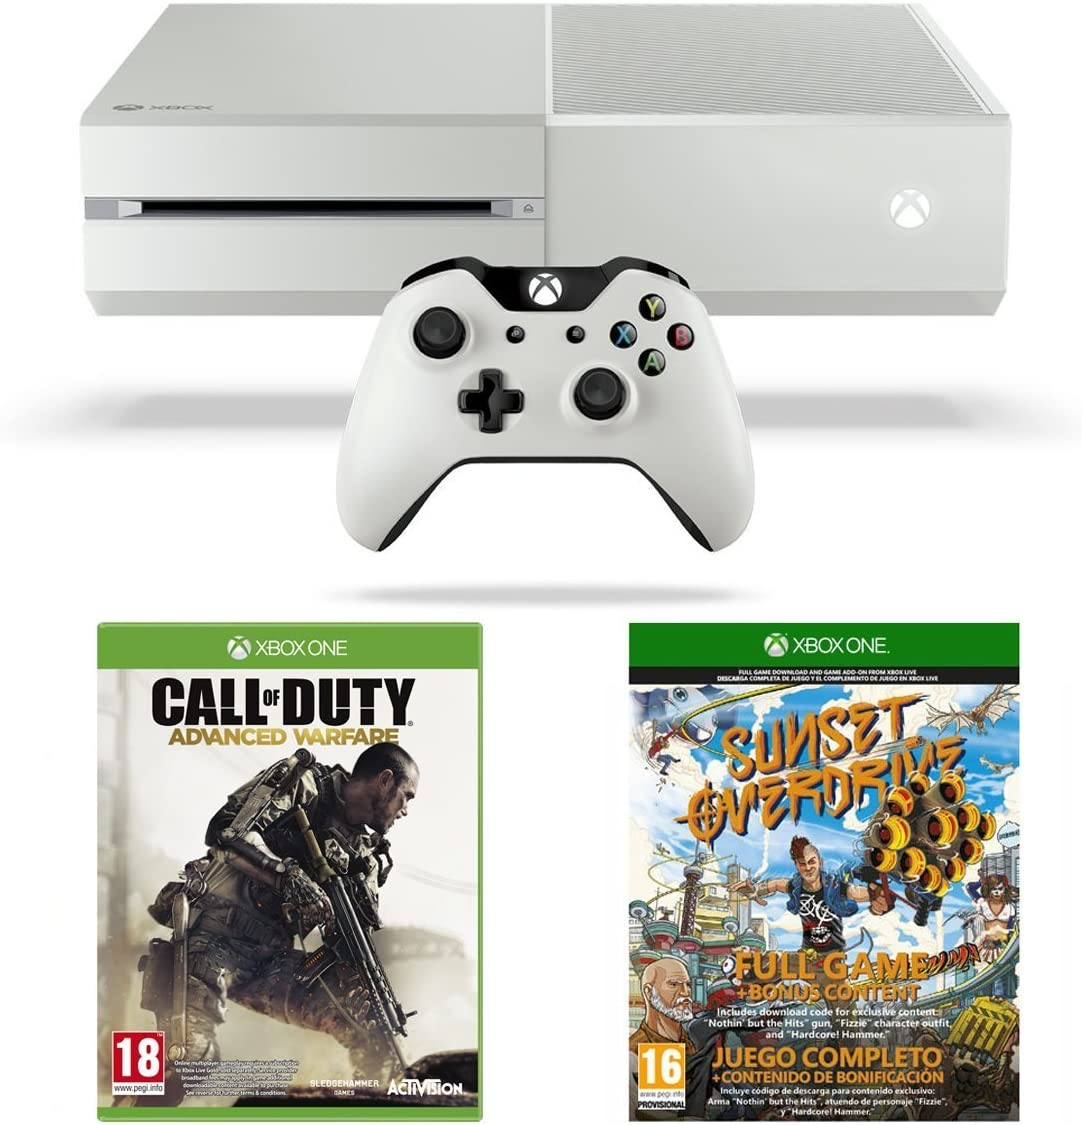 Xbox One White Console, Sunset Overdrive and Call of Duty ...